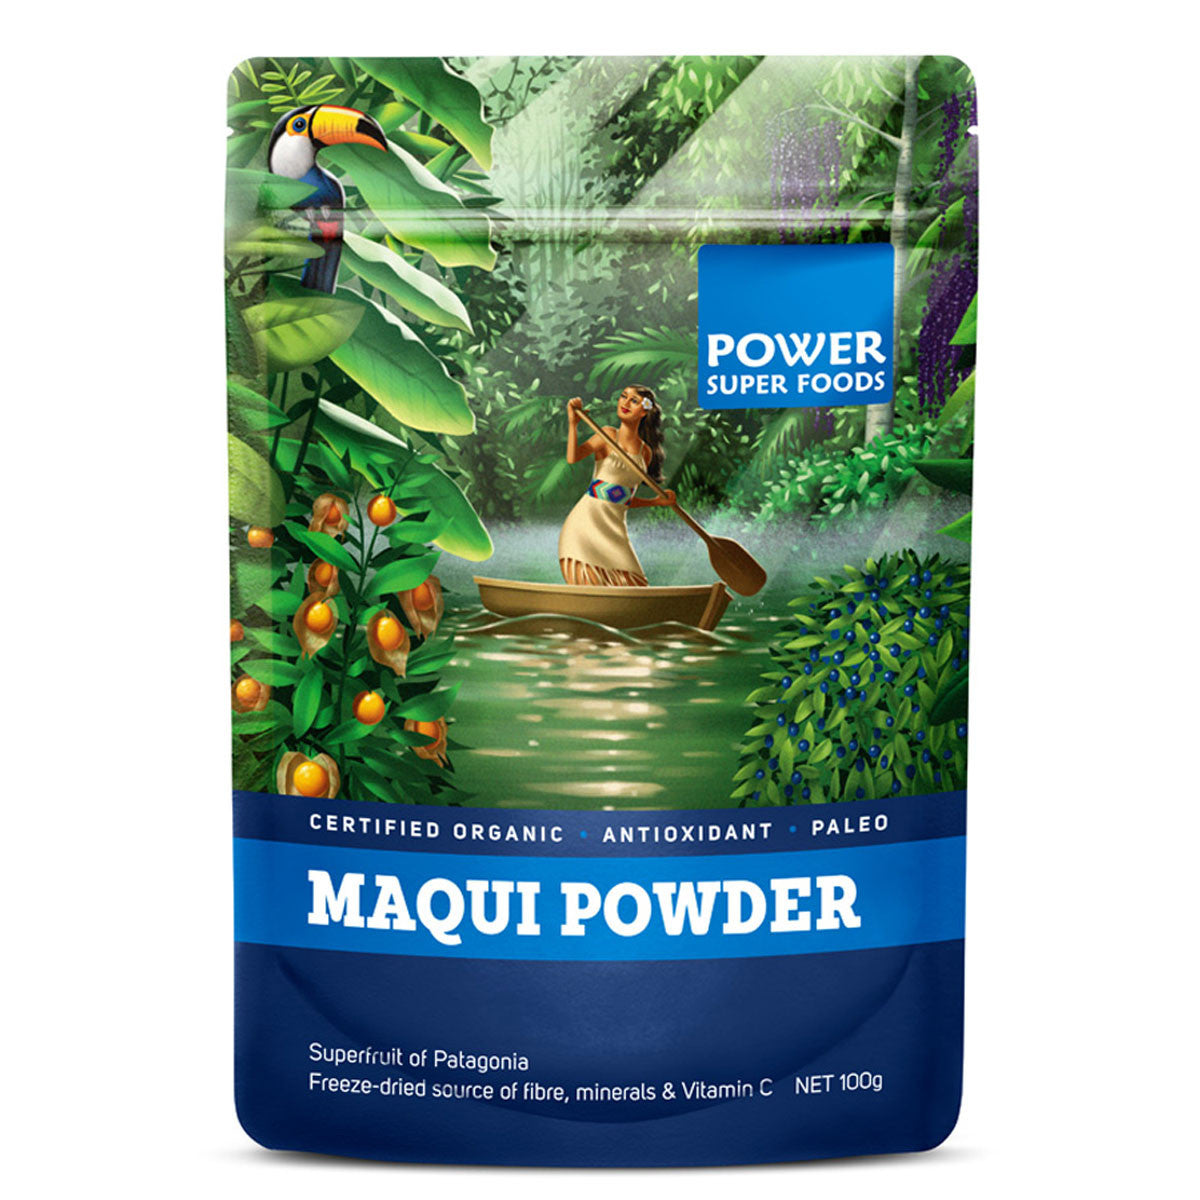 Power Super Foods Macqui Powder  100g - Power Super Foods - Little Earth Nest - 1